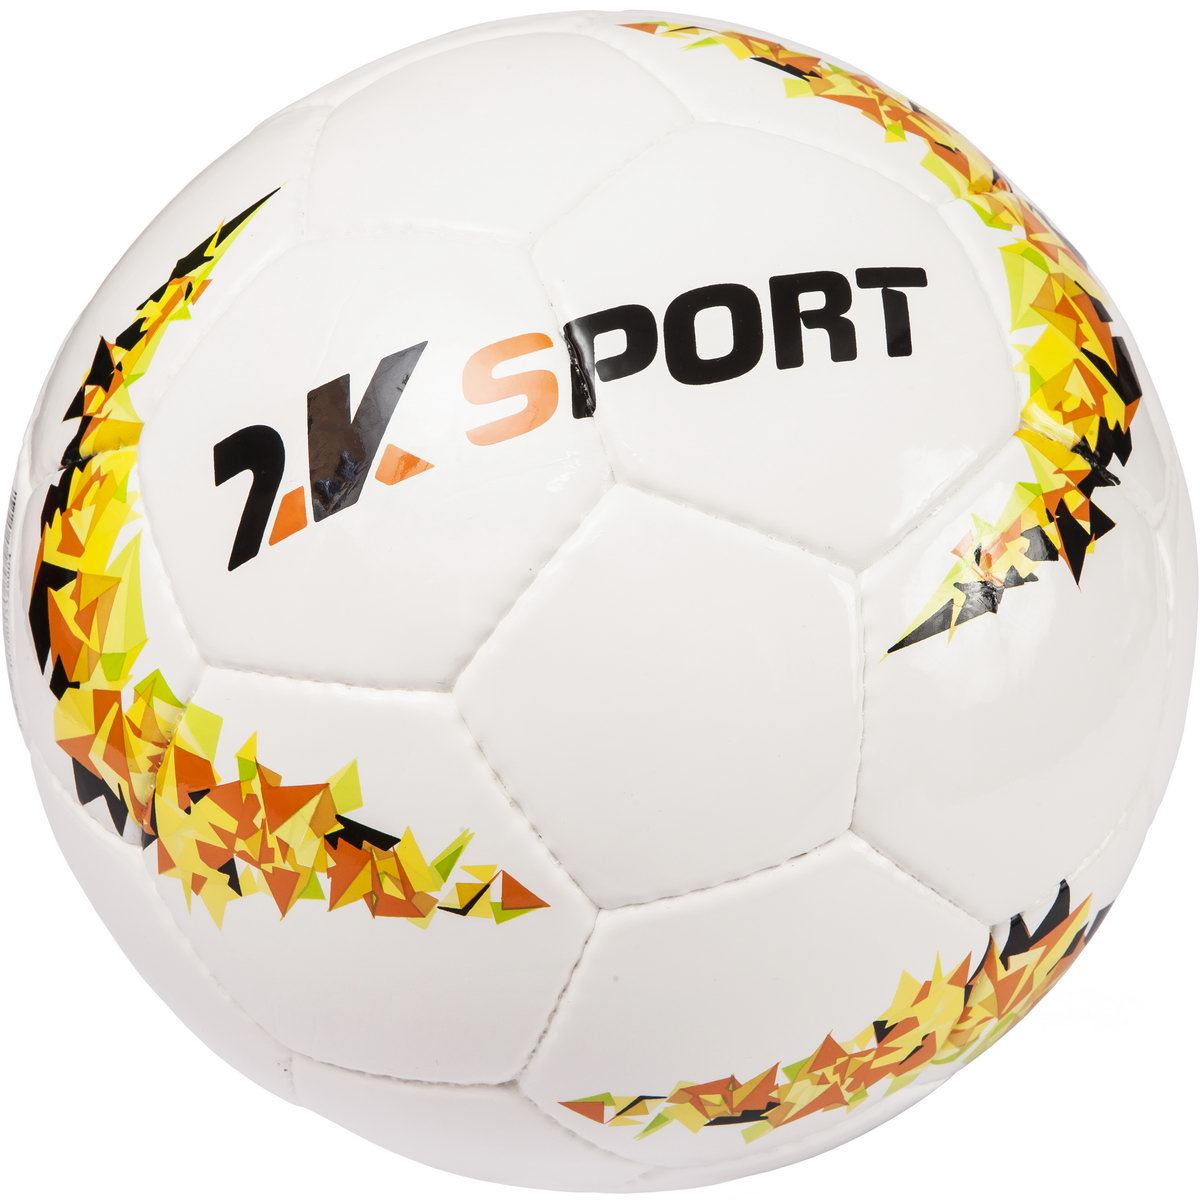 2K SPORT CRYSTAL EVOLUTION 127096